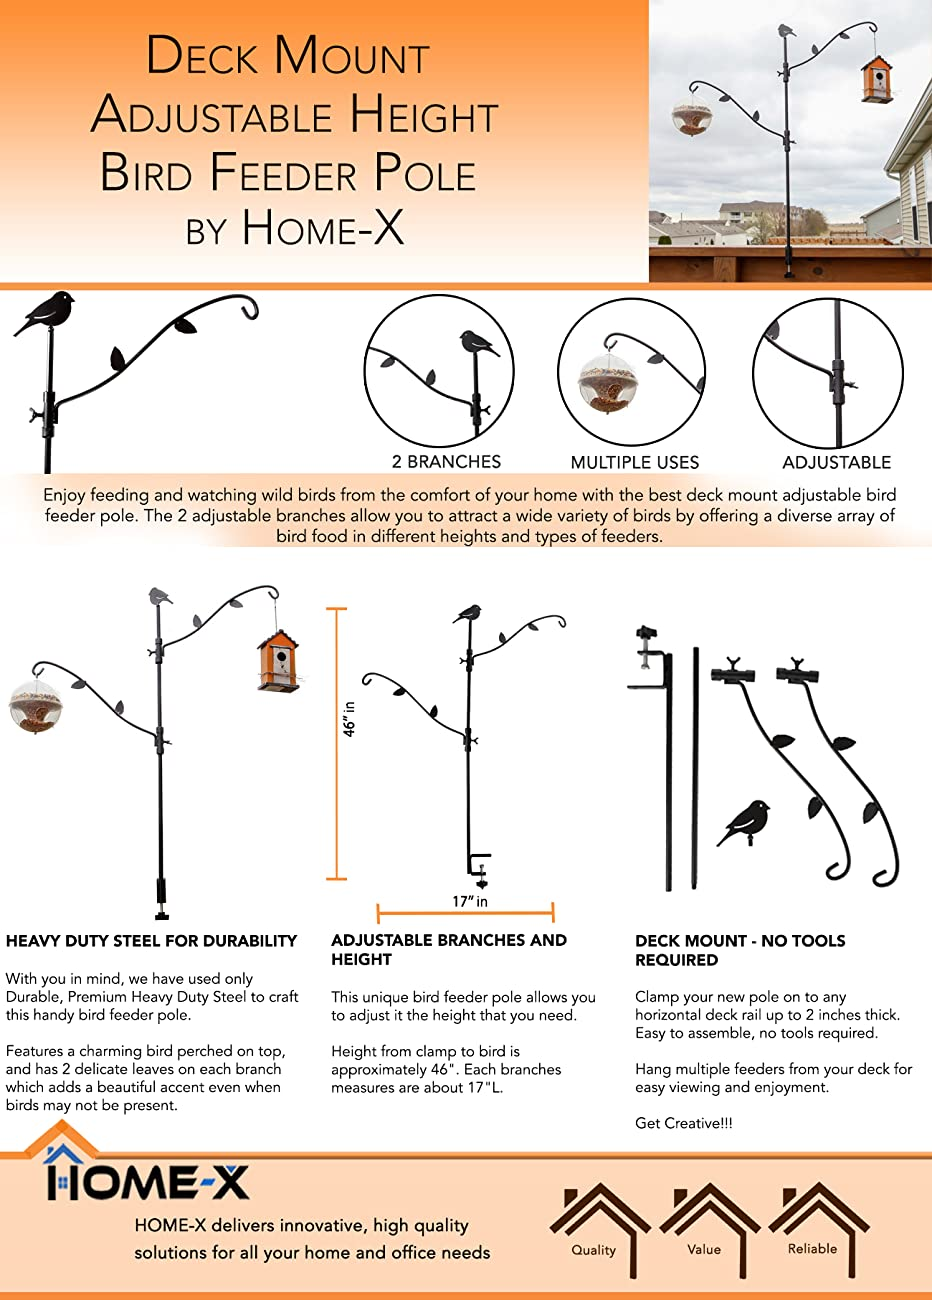 hangers deck planters reach heavy graybunny baskets extended feeder for clamp duty feeders hook suet and chimes decks inch lanterns pole bird wind more black